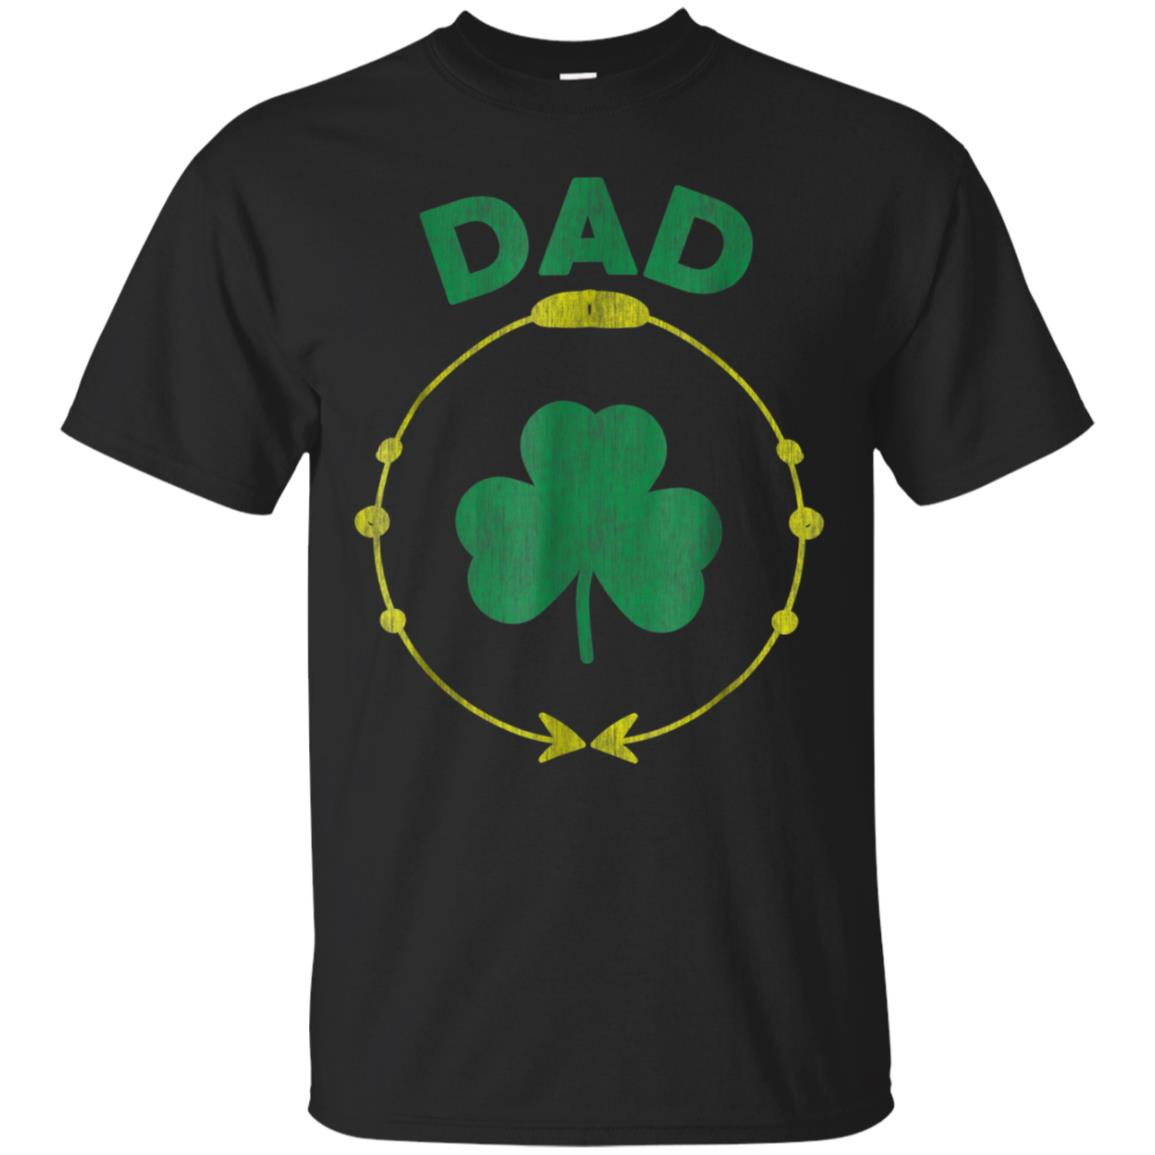 St Saint Patrick's Day Irish T Shirt Dad Family Matching Tee 99promocode